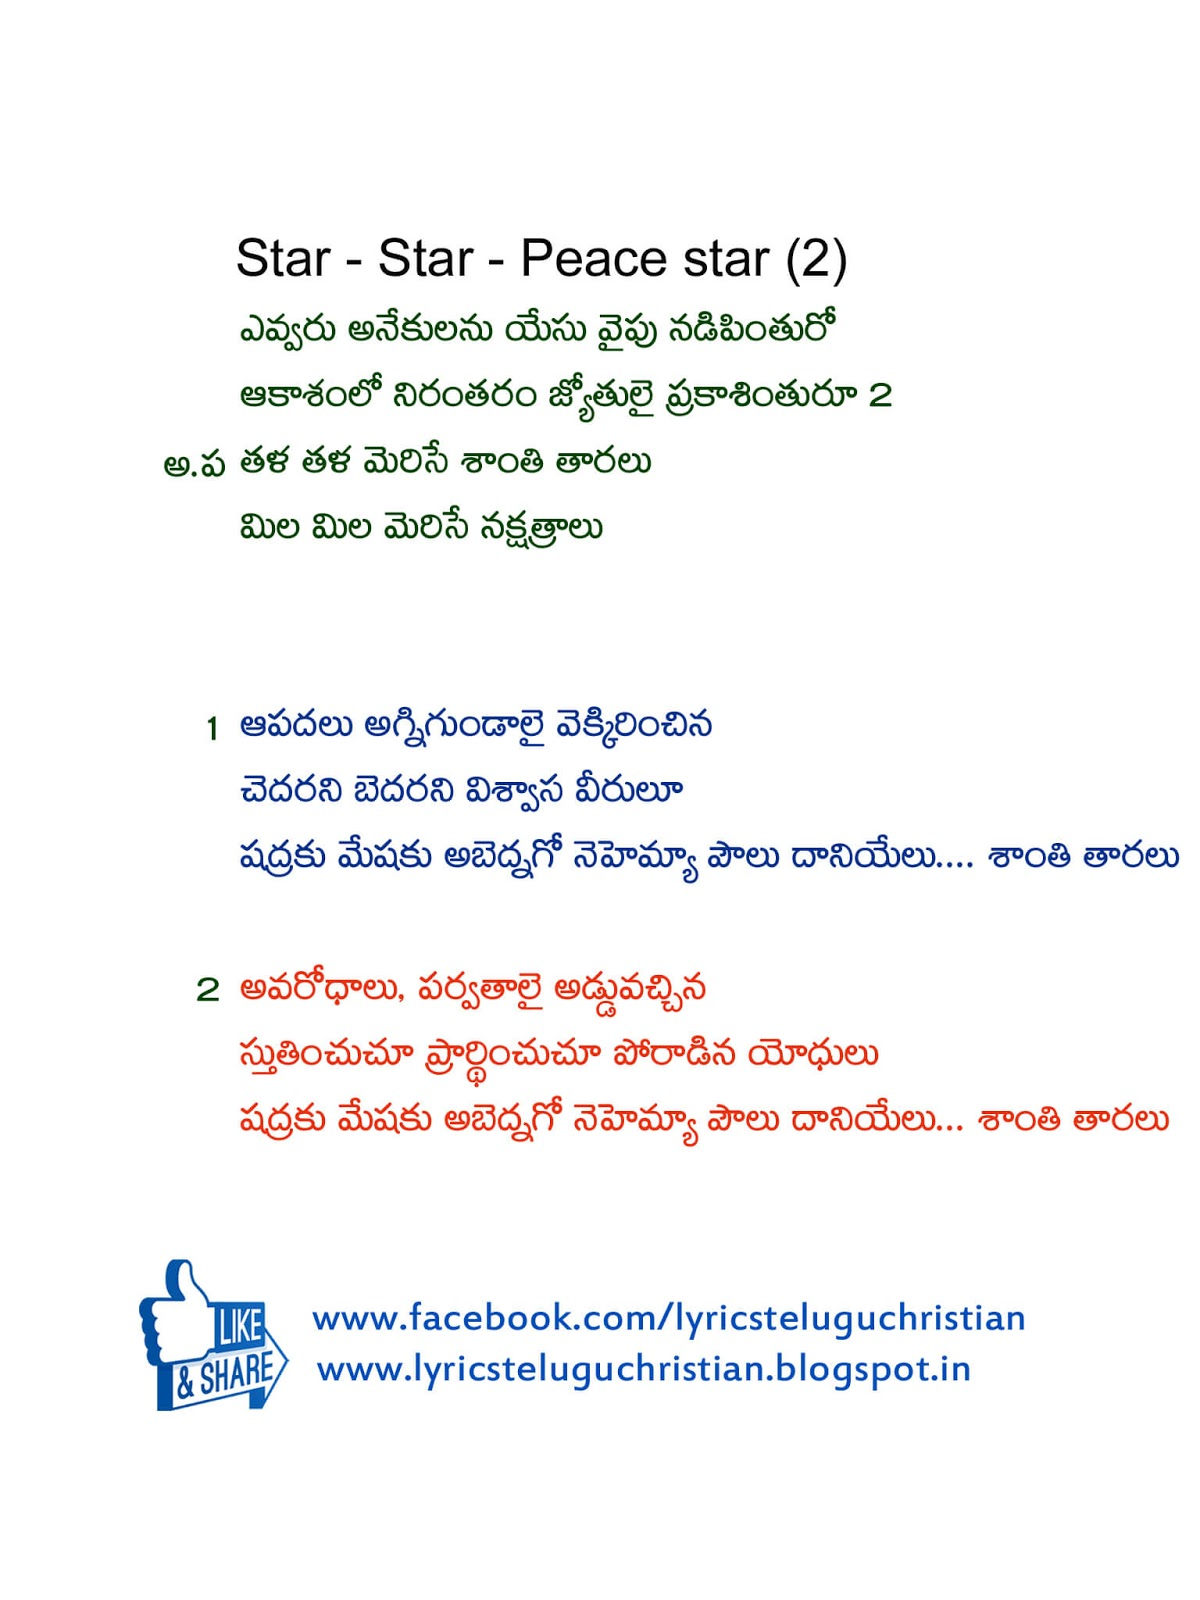 Sunday school songs in telugu lyrics